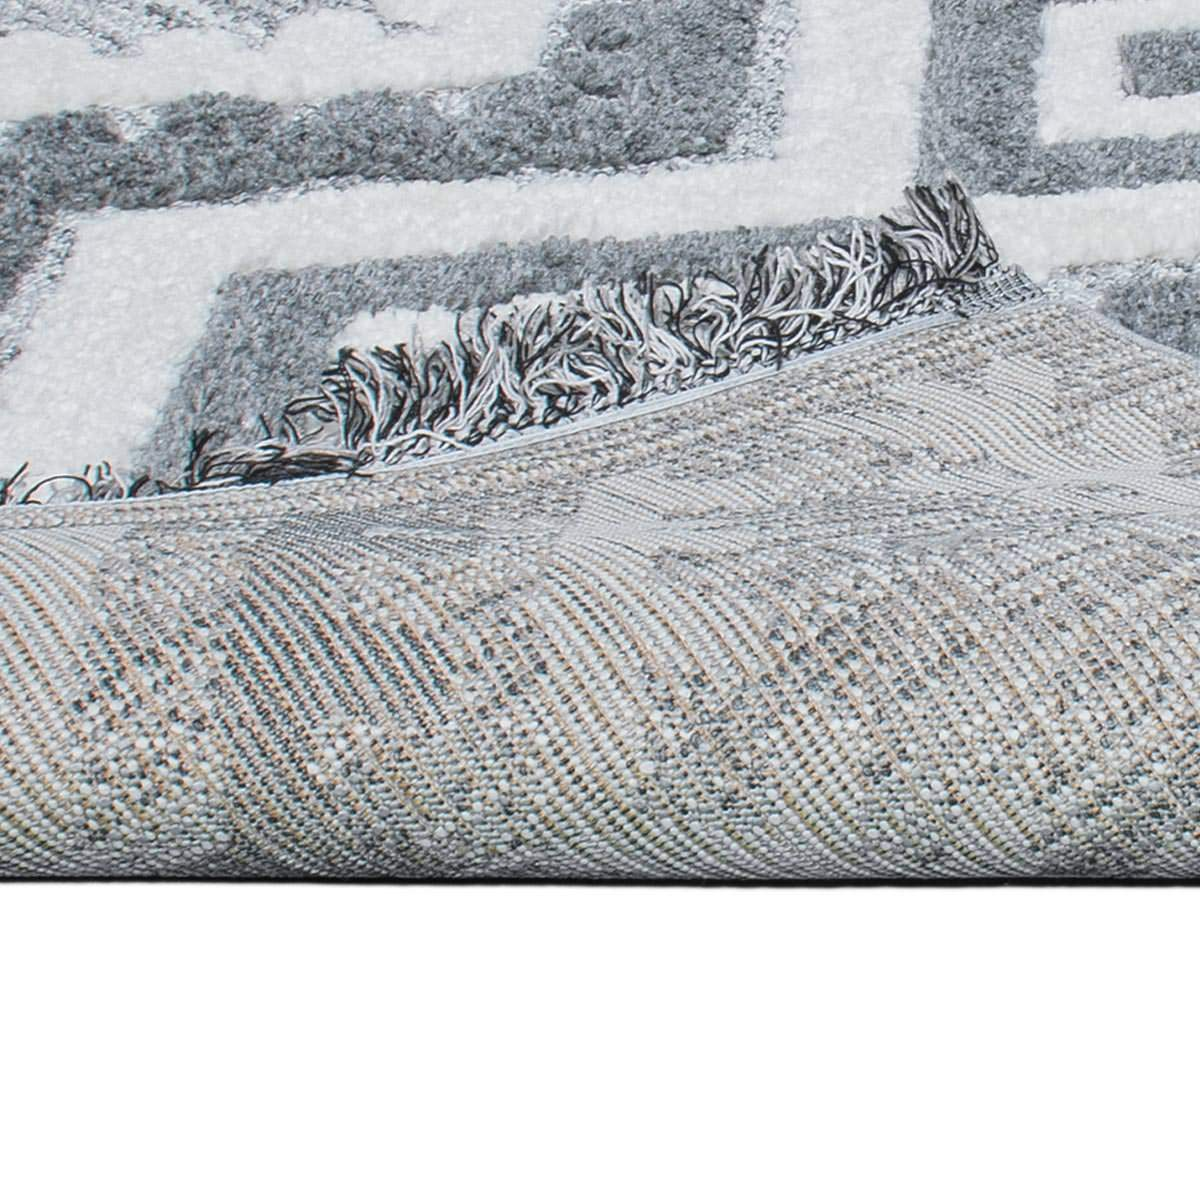 Atlas Rug 08 Grey Runner - Fringes 4